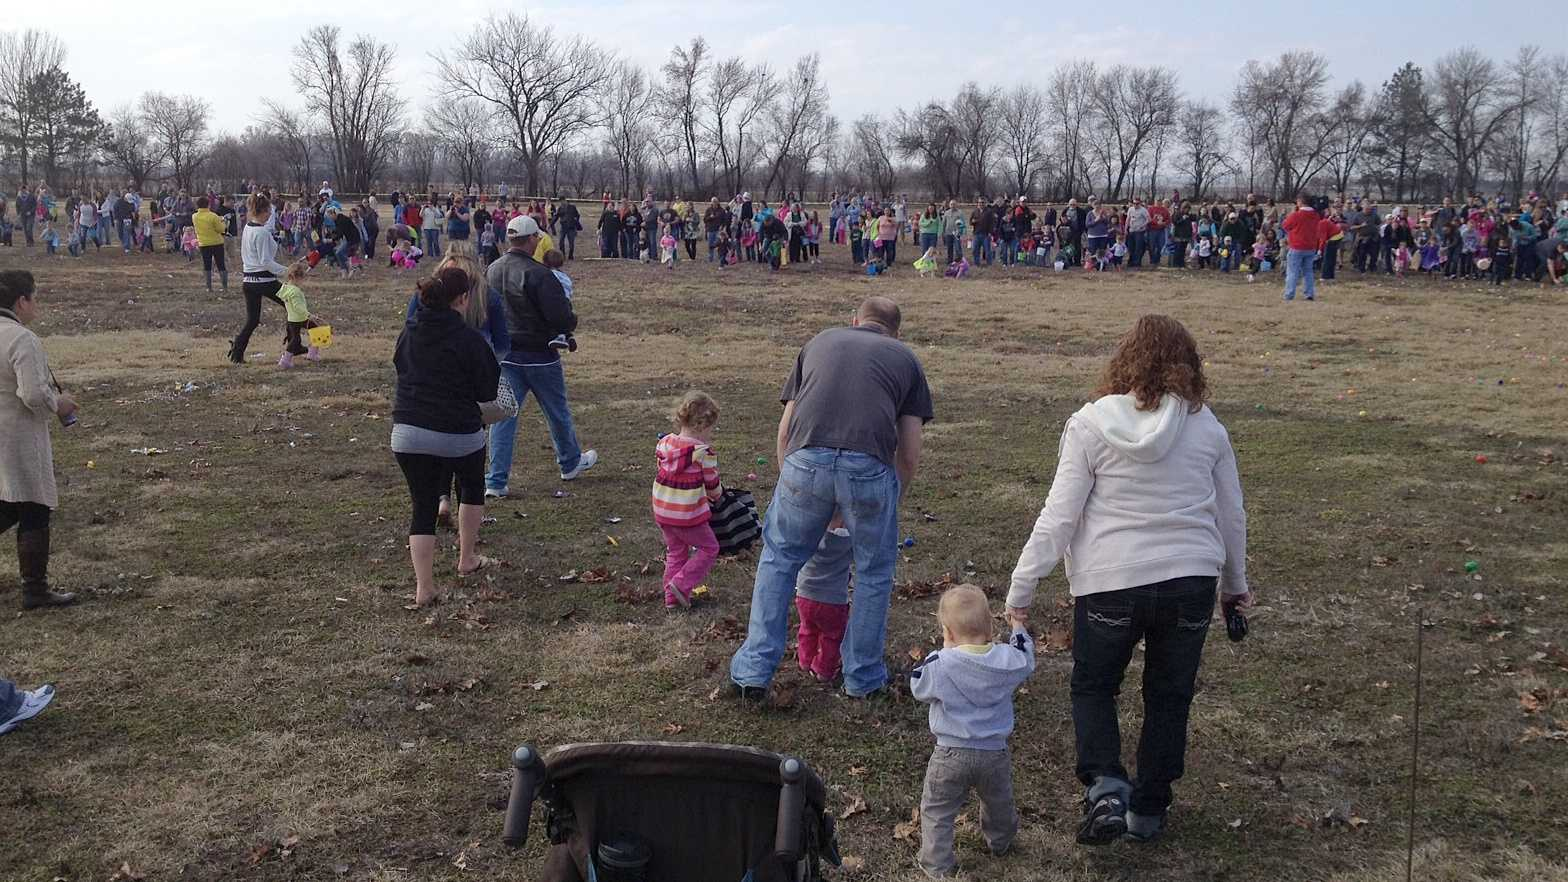 Hundreds of kids take part in the 2013 Offutt AFB Easter egg hunt.